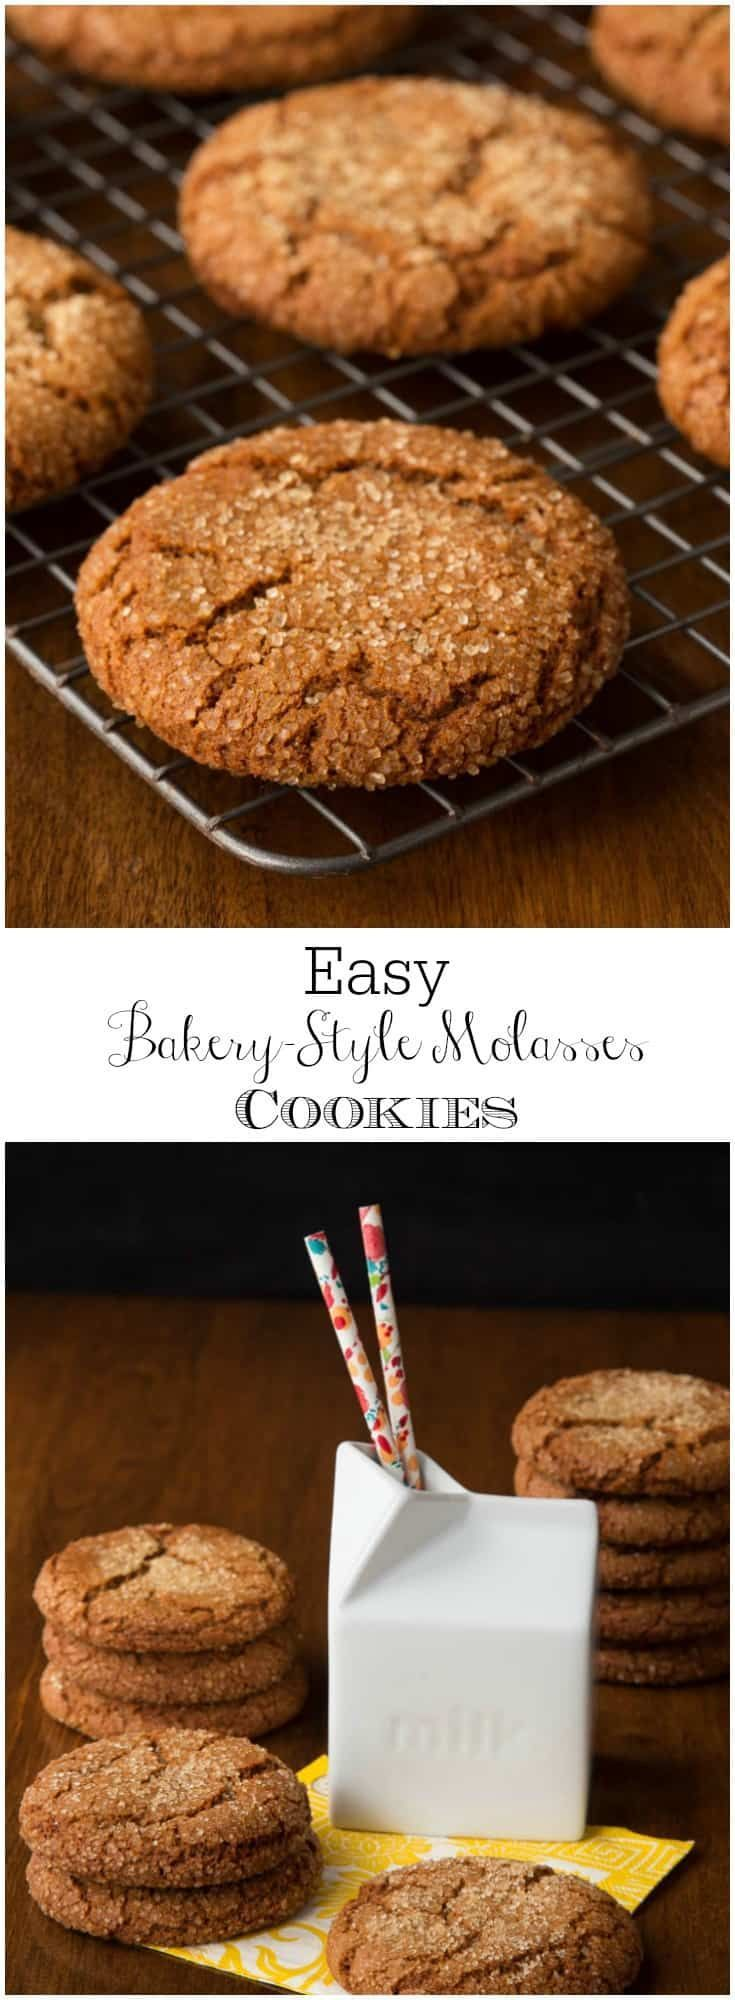 Just like the cookies you find in a fine bakery, except you can mix the dough up in one bowl in just ten minutes - and they cost WAY less! #molassescookies #bakerystyle #cookies #easy #onebowl